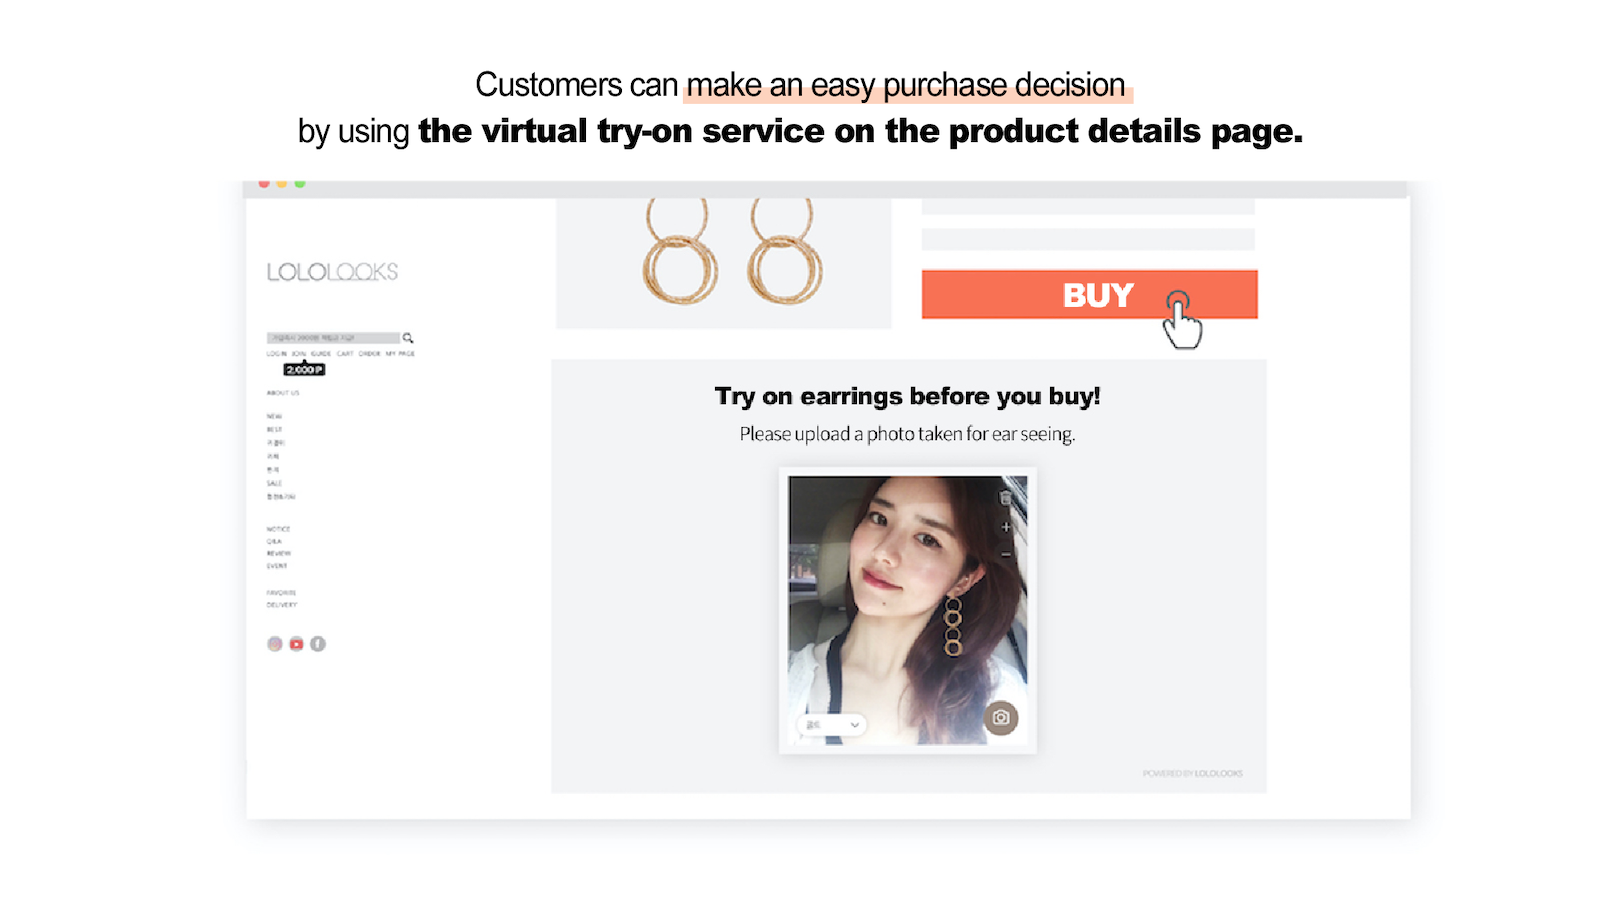 Customers can make a purchase decision easily.